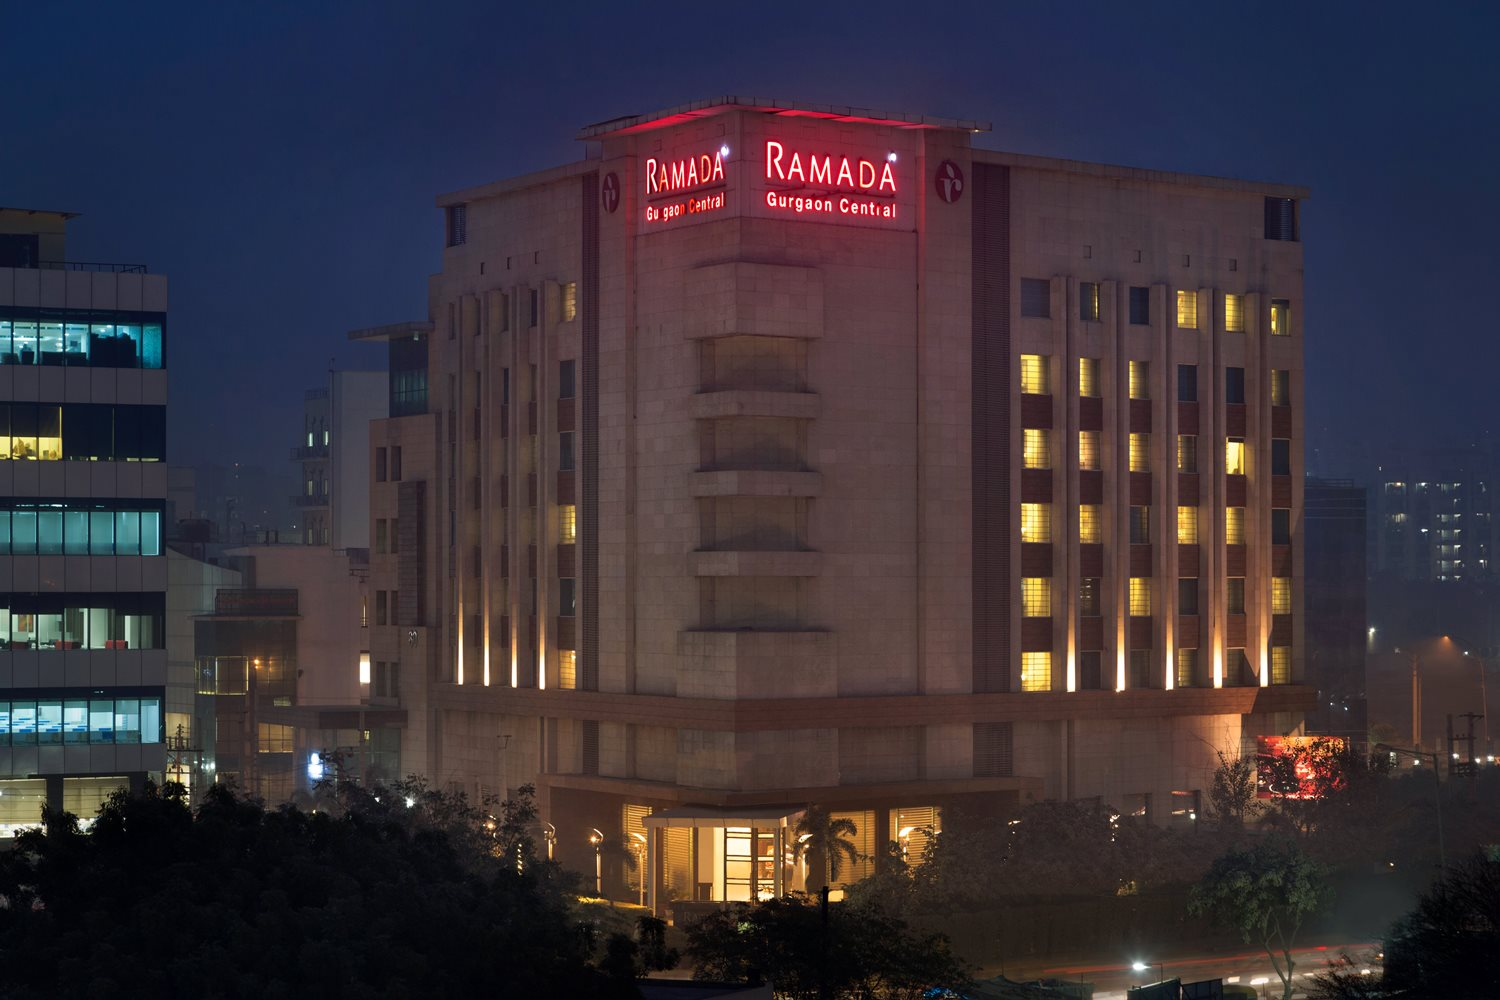 Ramada Gurgaon Central, Gurugram, India.